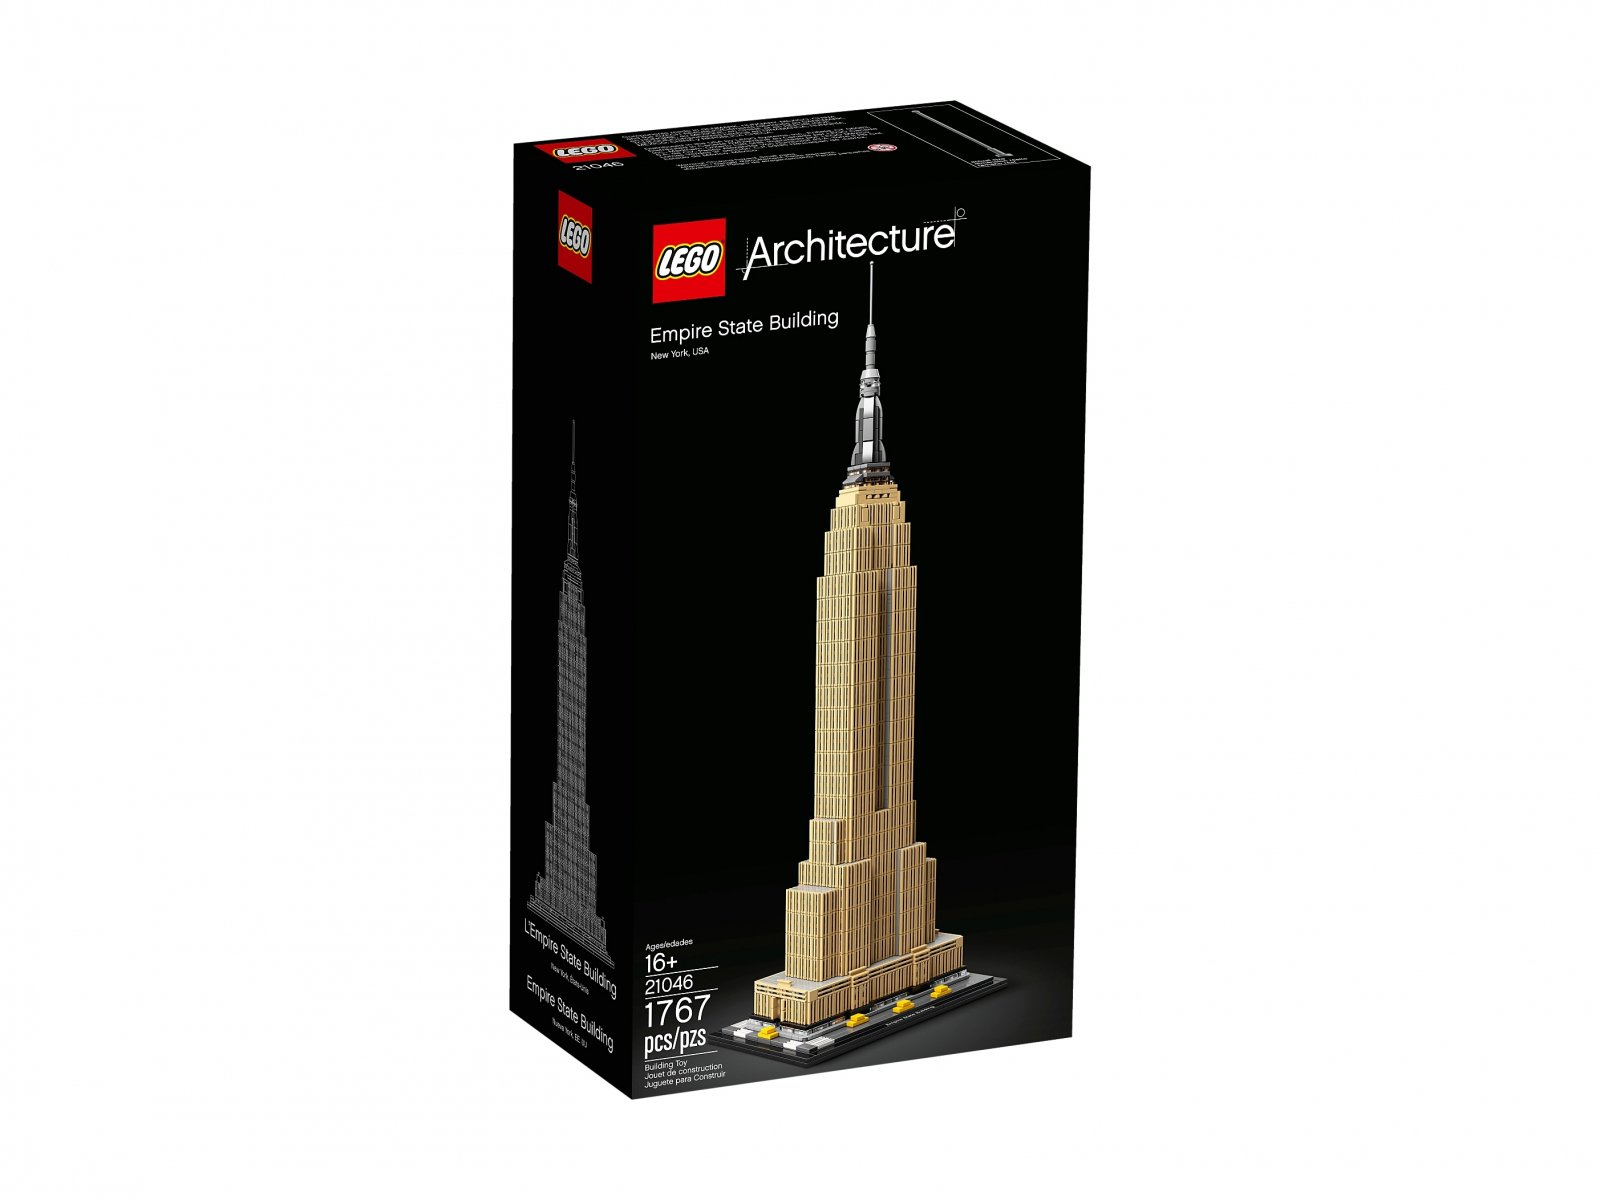 LEGO 21046 Empire State Building